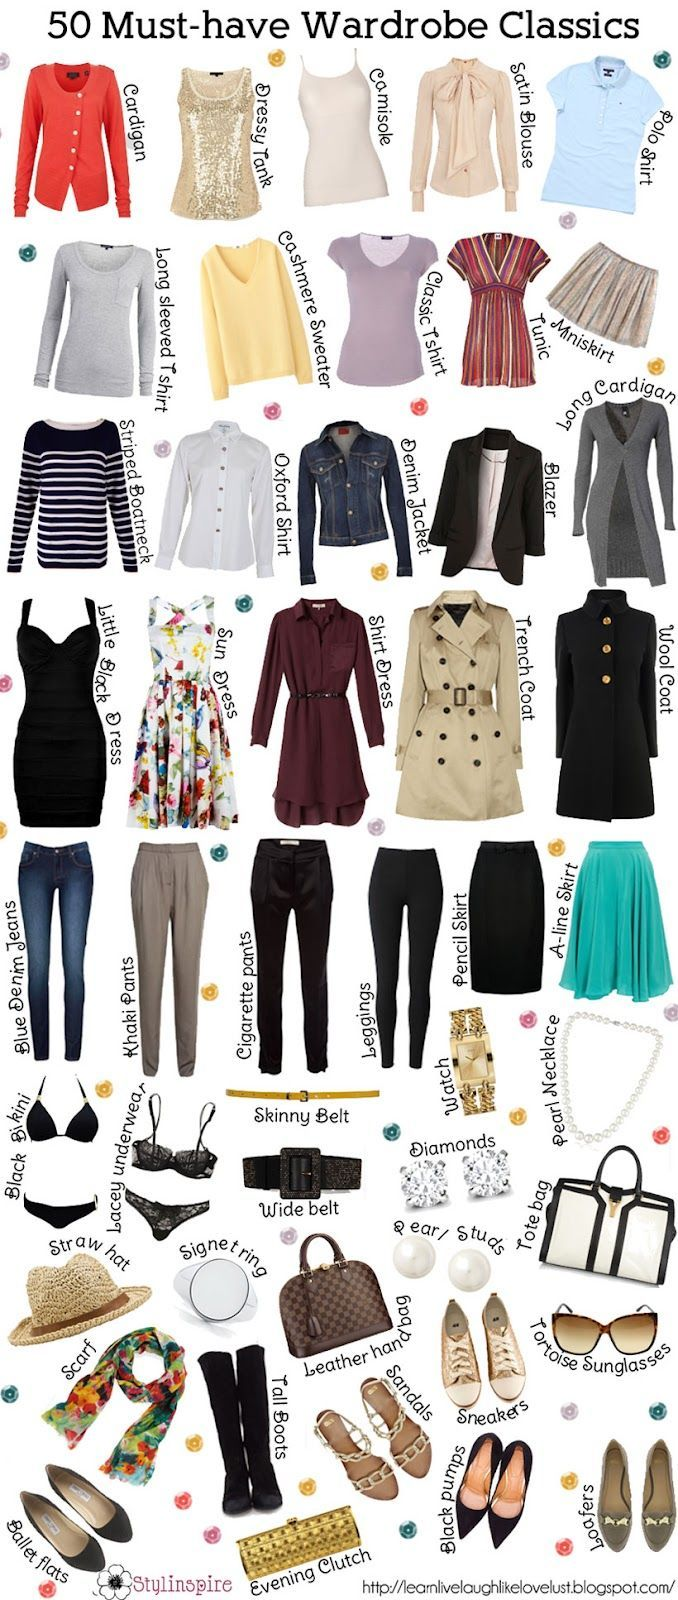 ... Must have clothing items classics for wardrobe..have some .need toprint and make check off list in closet.